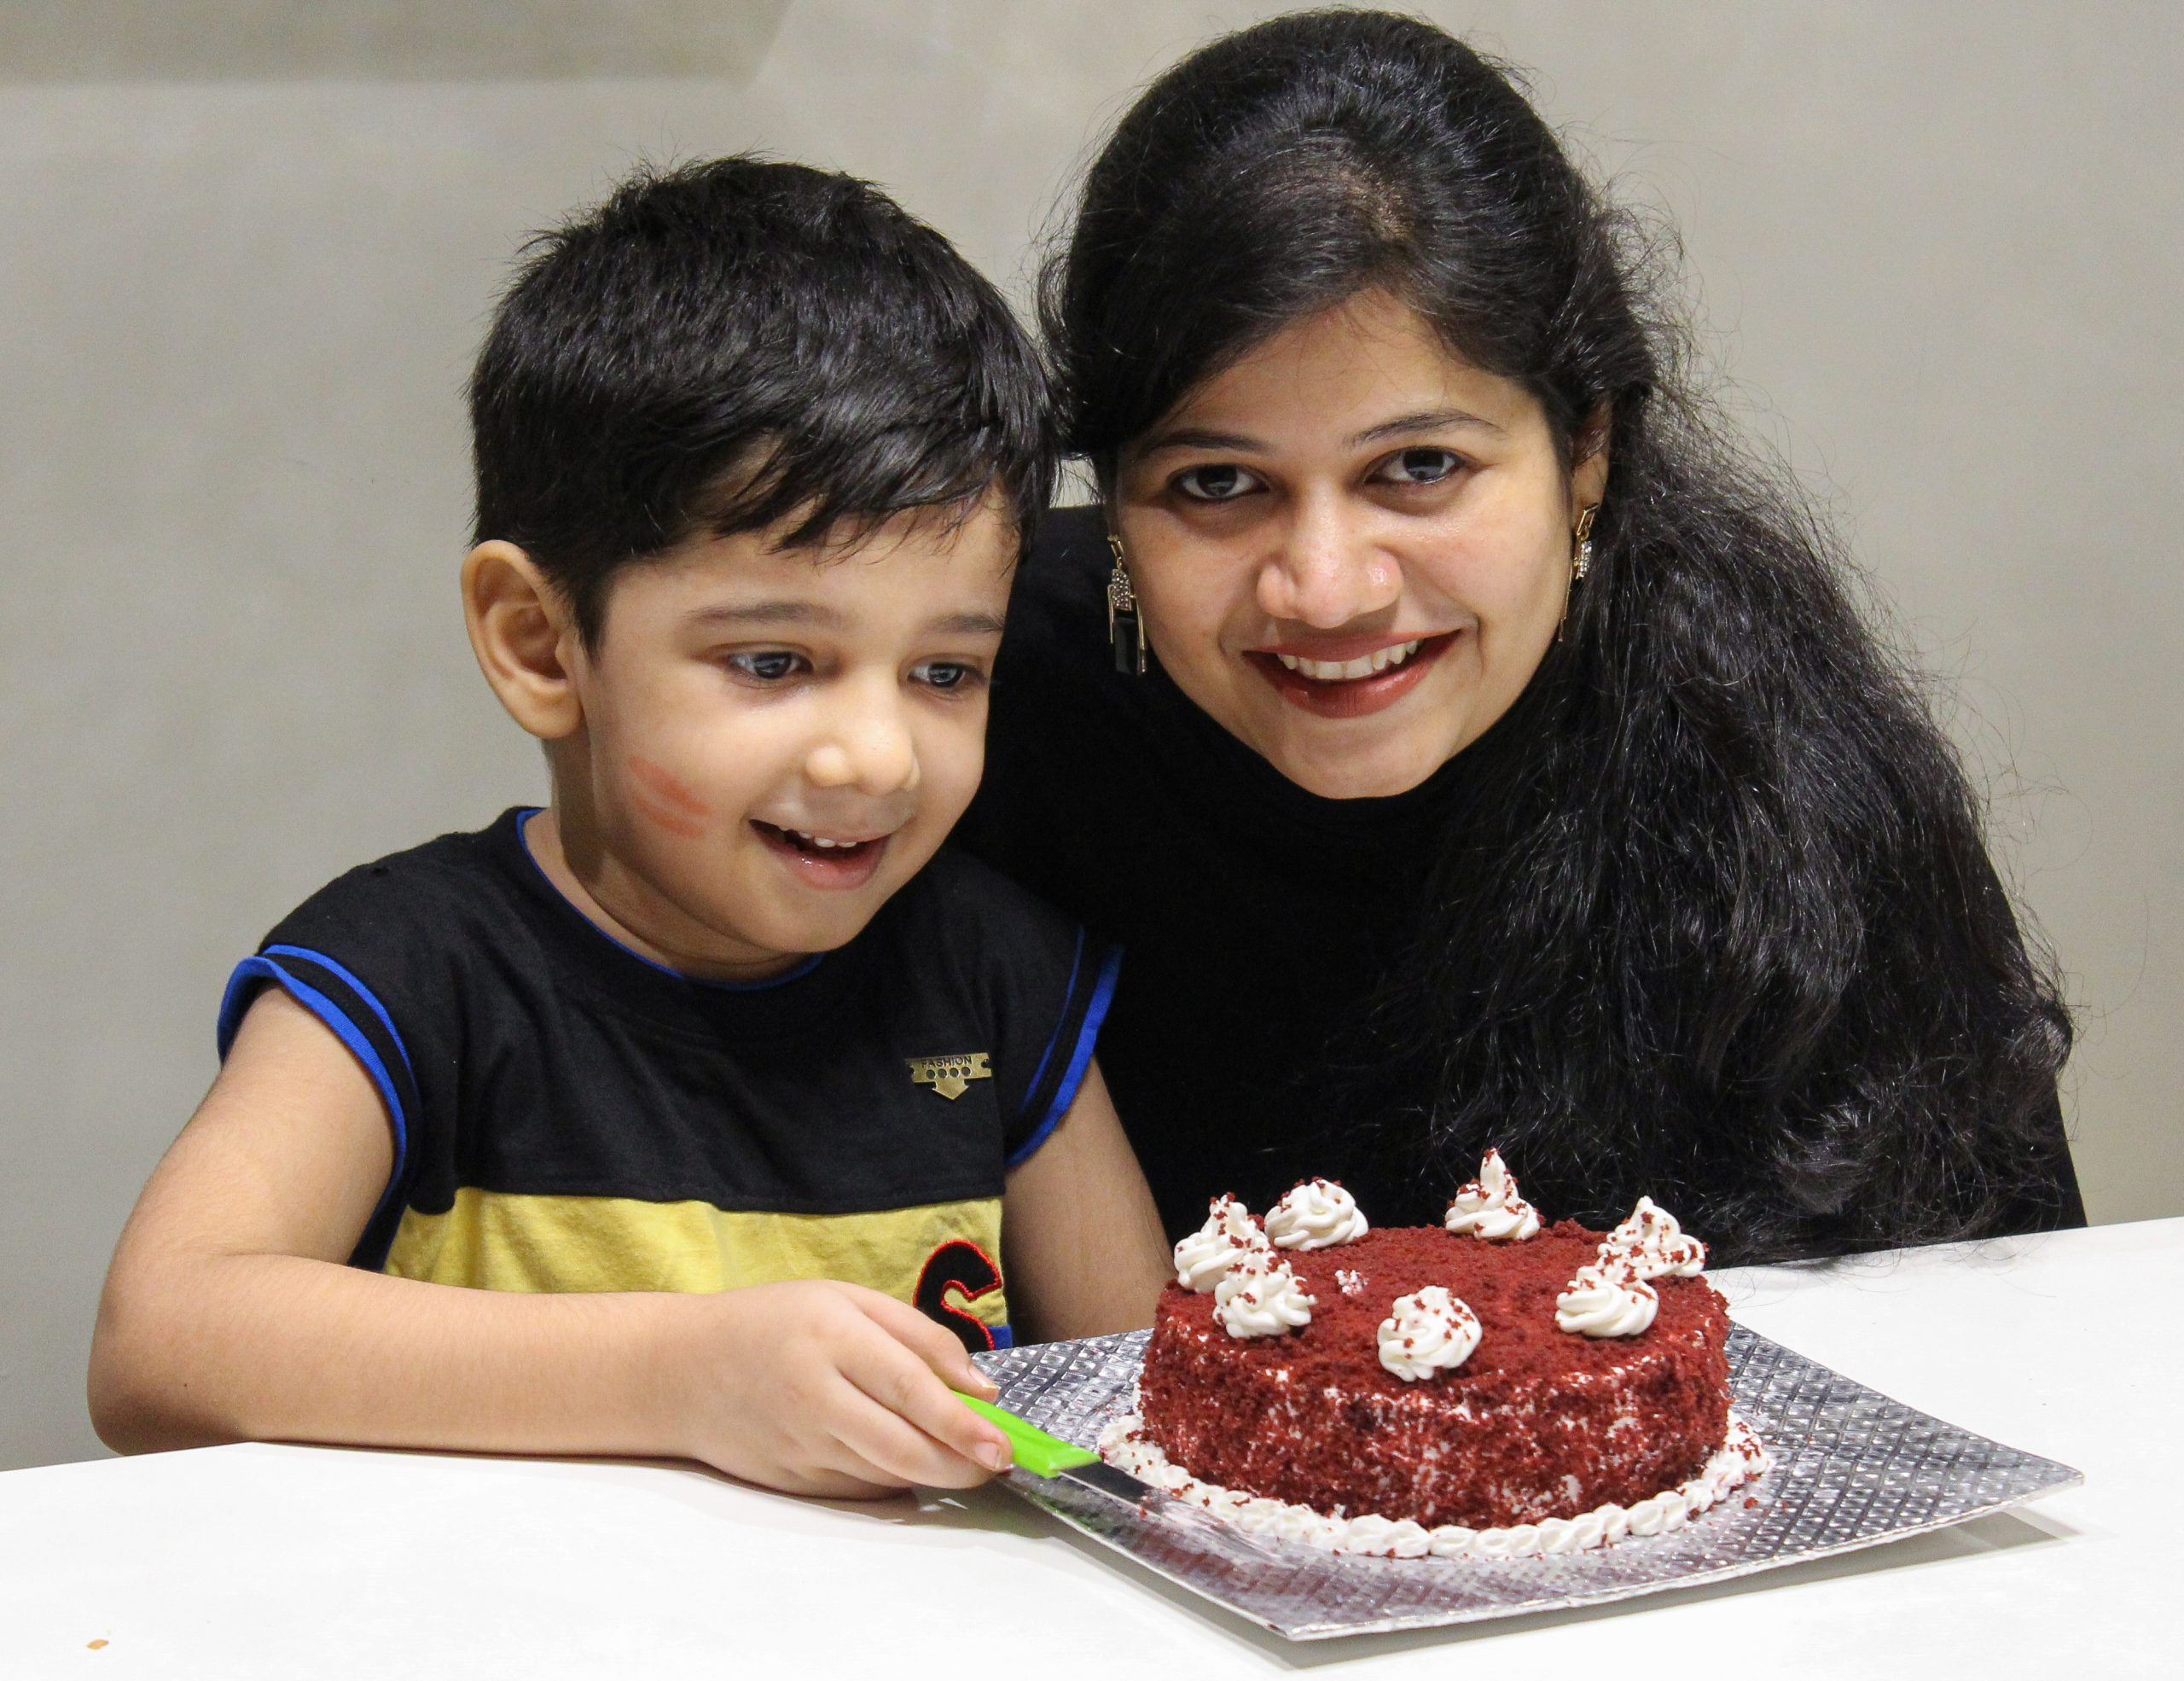 A mother celebrating birthday of her son